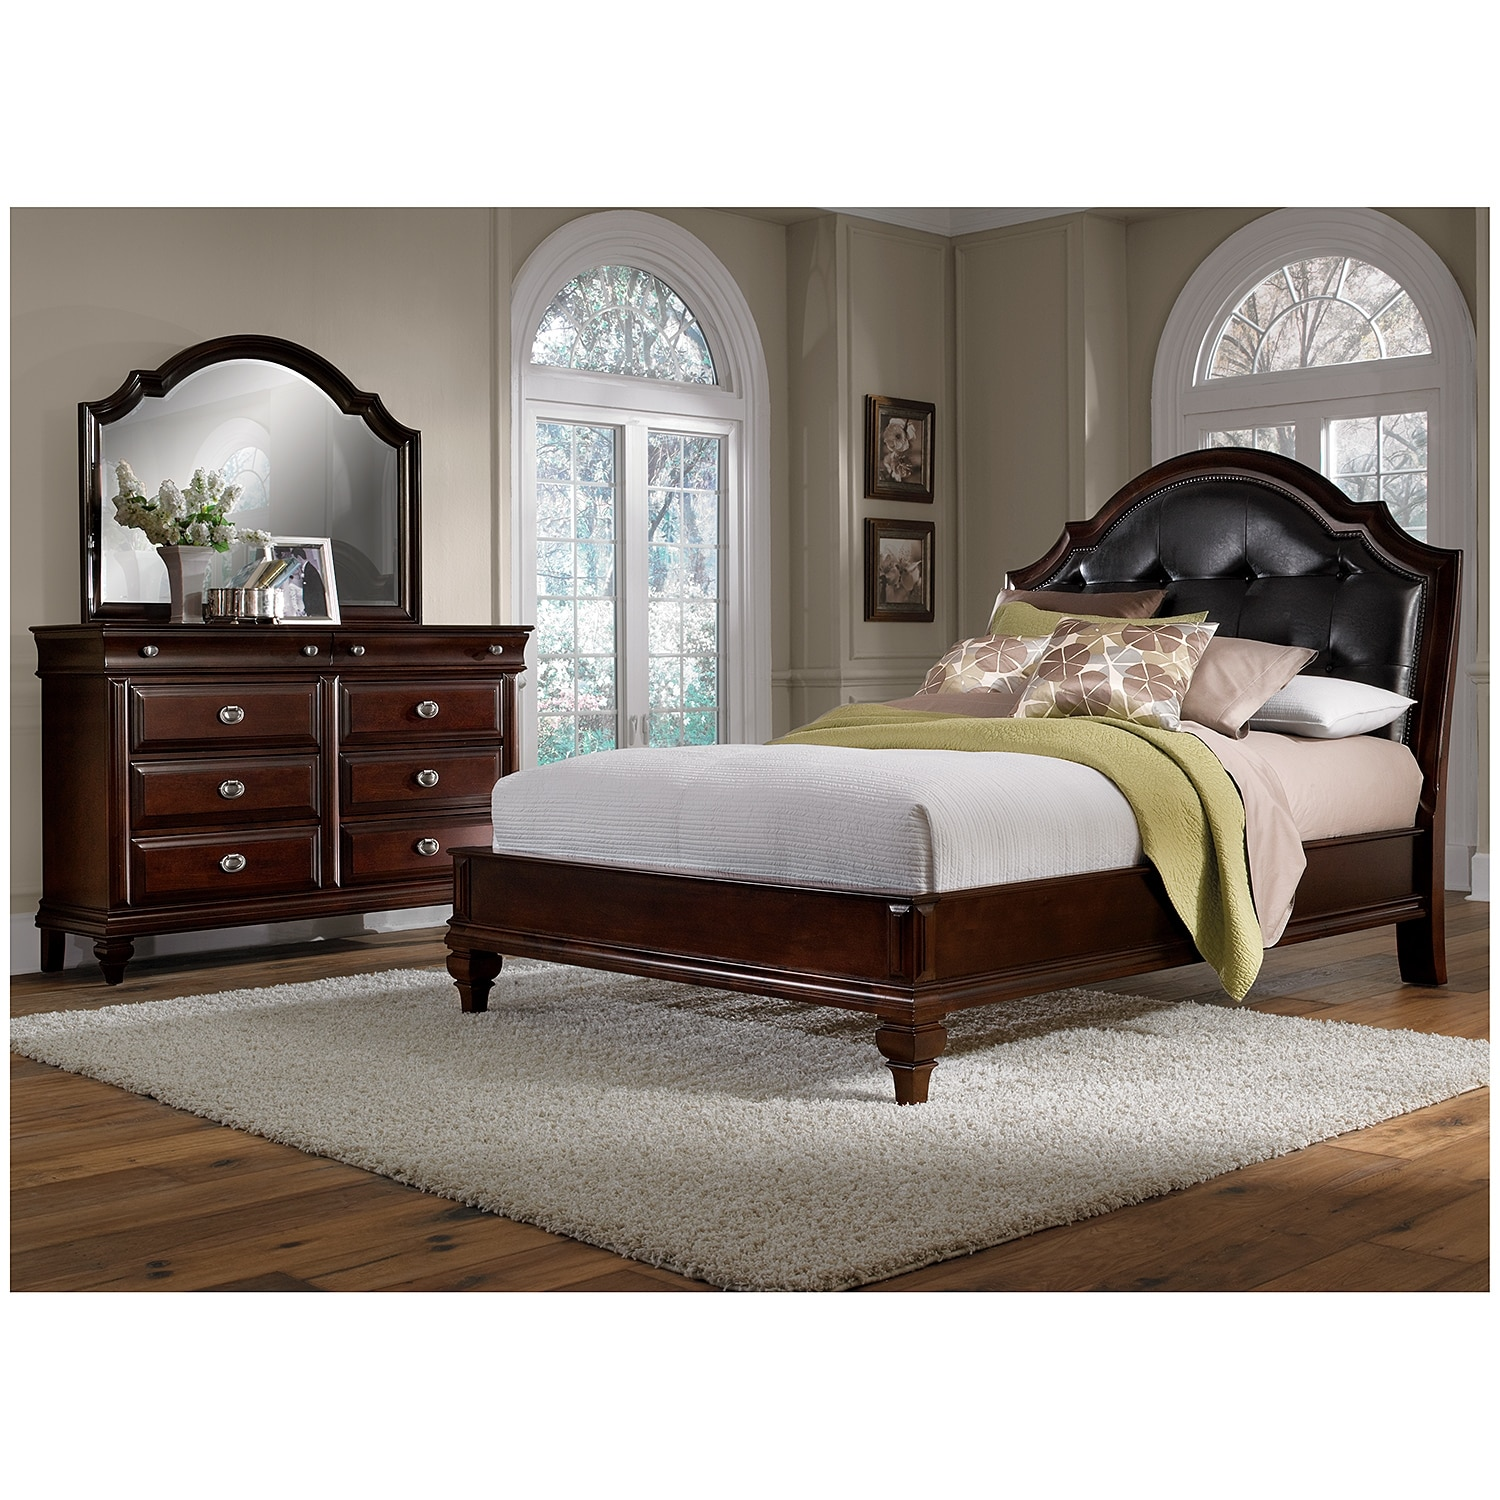 Bedroom Furniture - Manhattan 5-Piece Queen Bedroom Set - Cherry